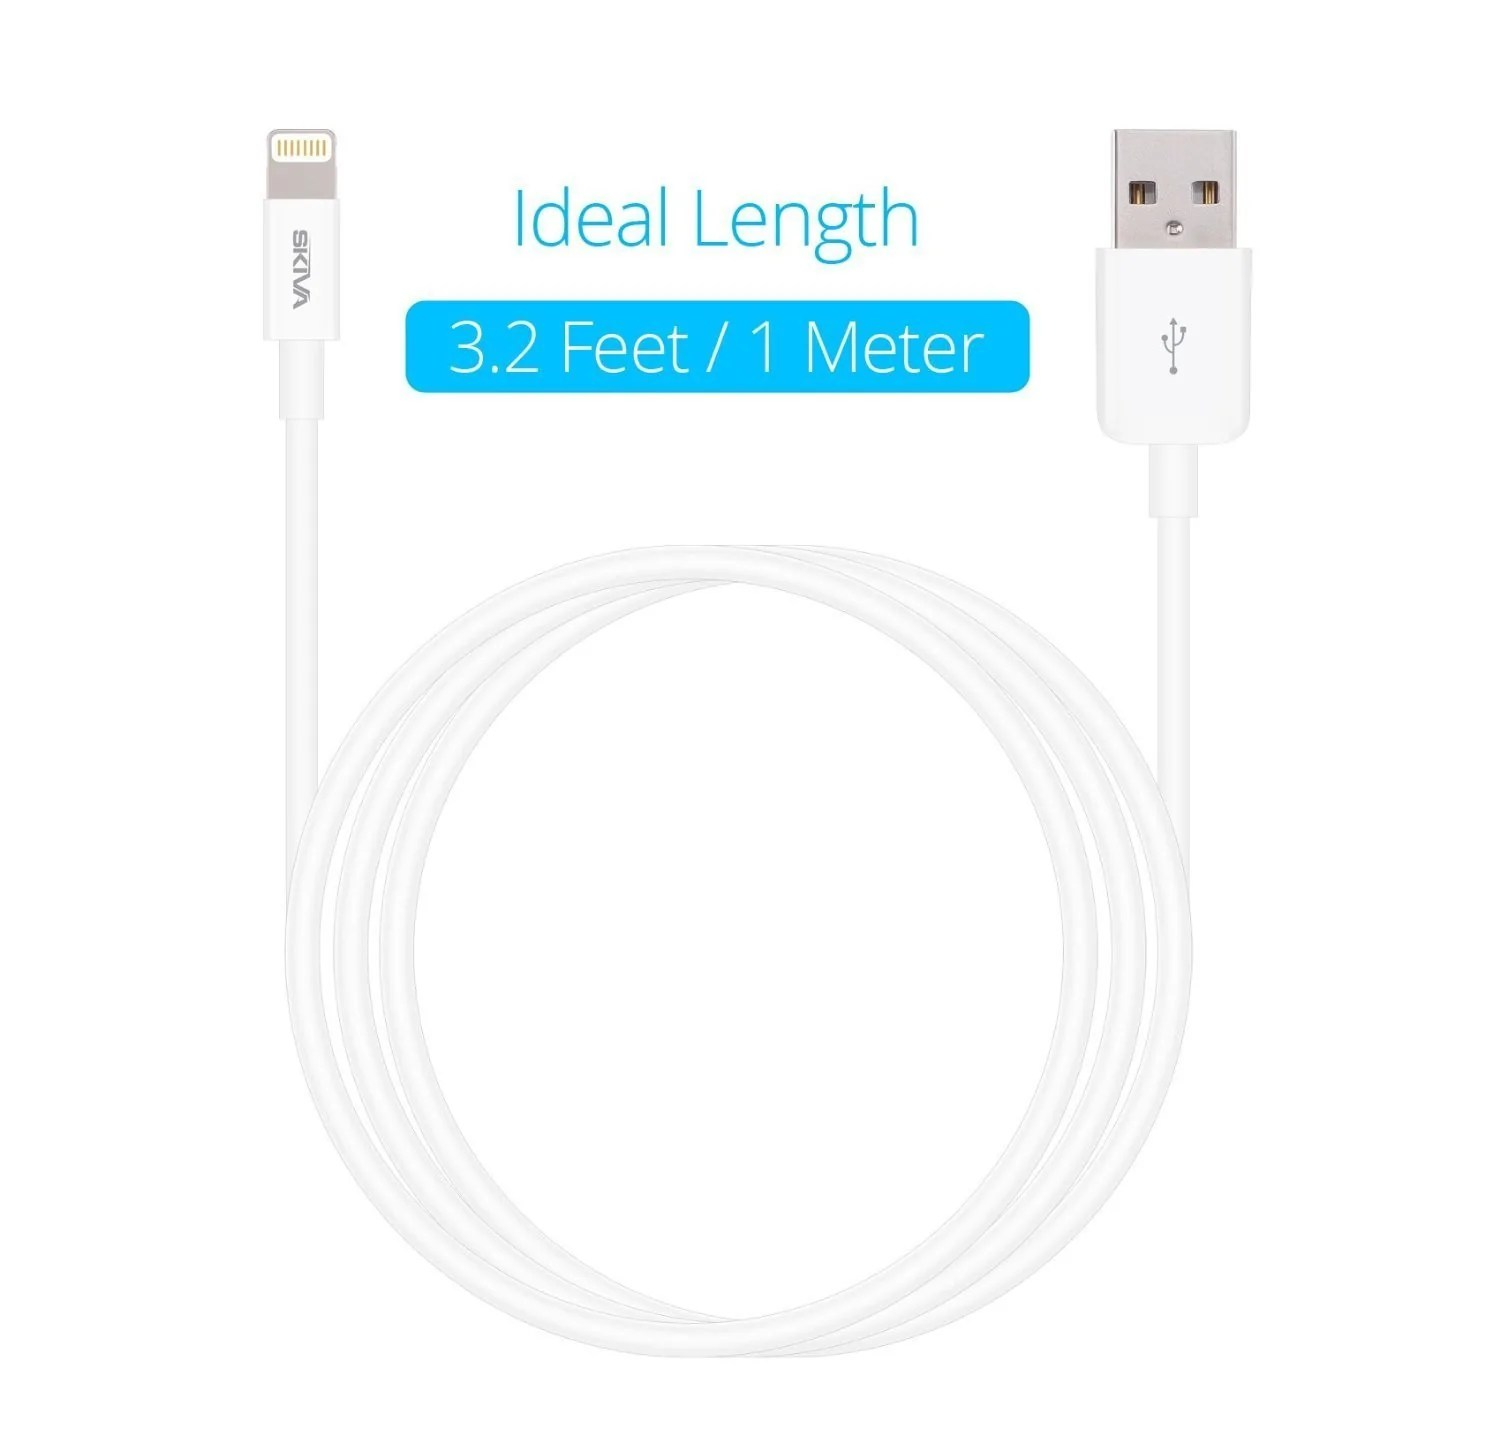 hight resolution of apple mfi certified lightning cables 7 pack skiva usblink 3 2 ft 1m fastest sync and charge 8 pin cable cb144